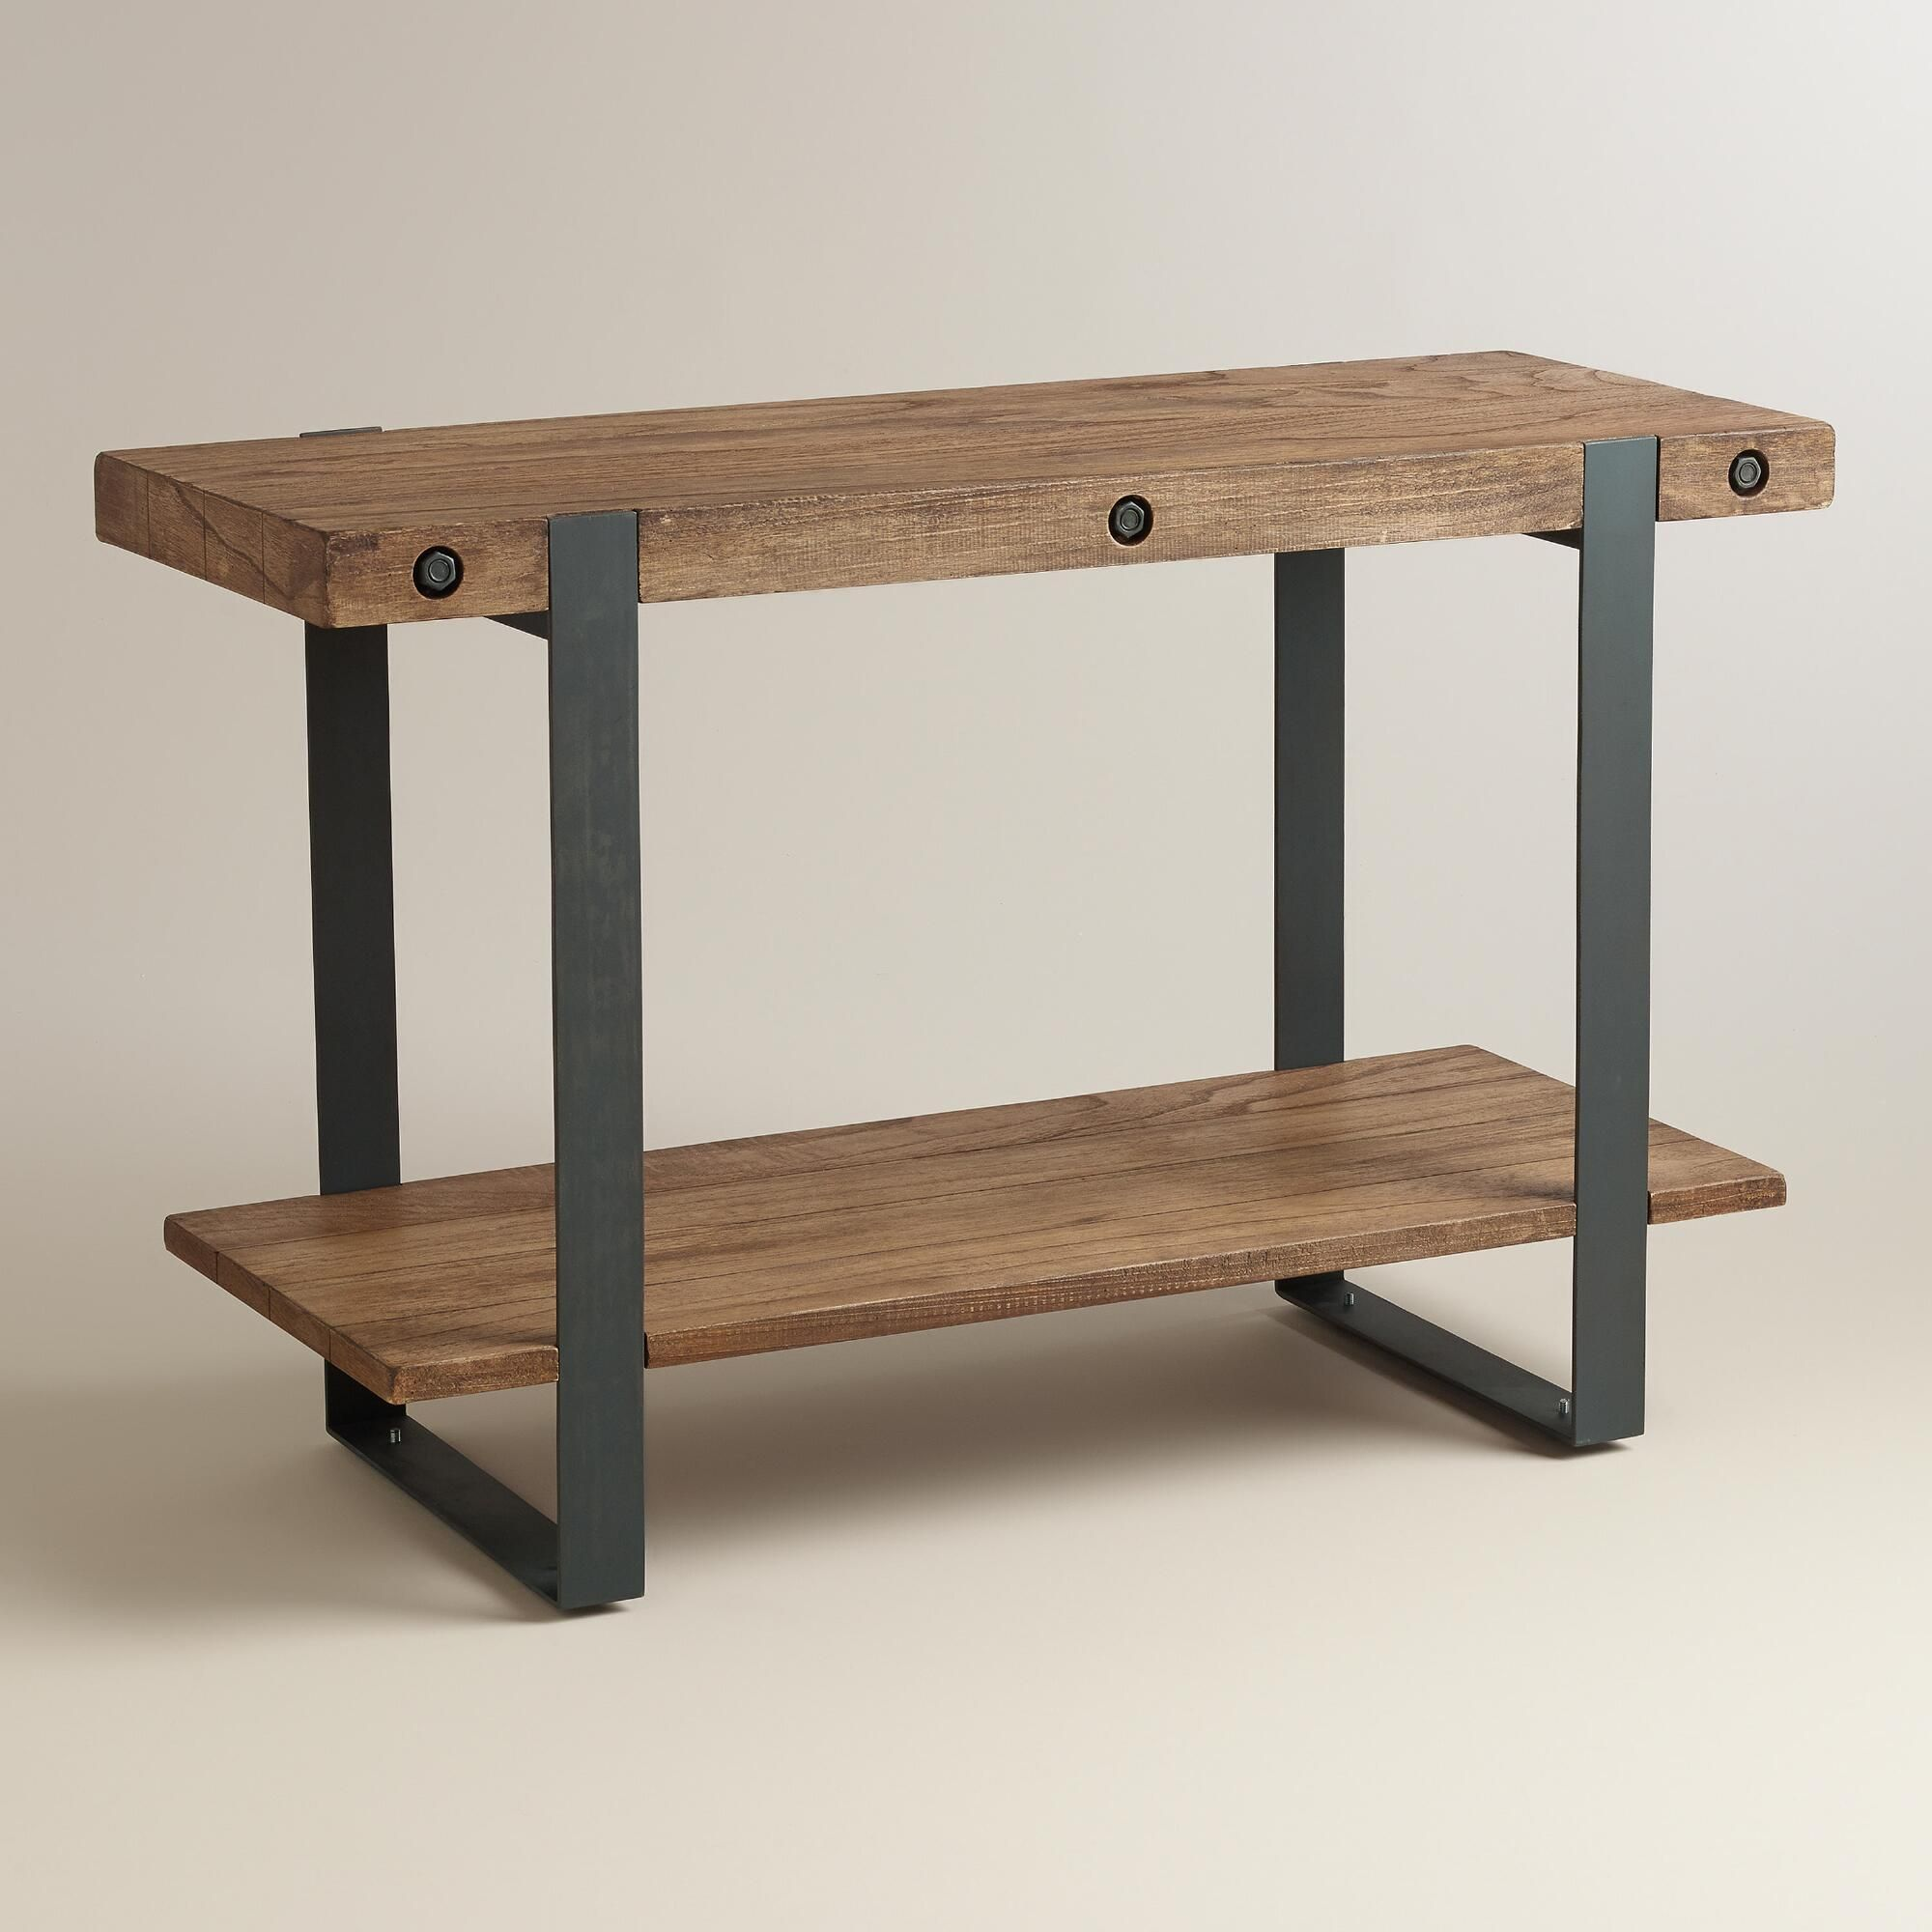 Rustic skylar console table console tables consoles and rustic skylar console table geotapseo Images